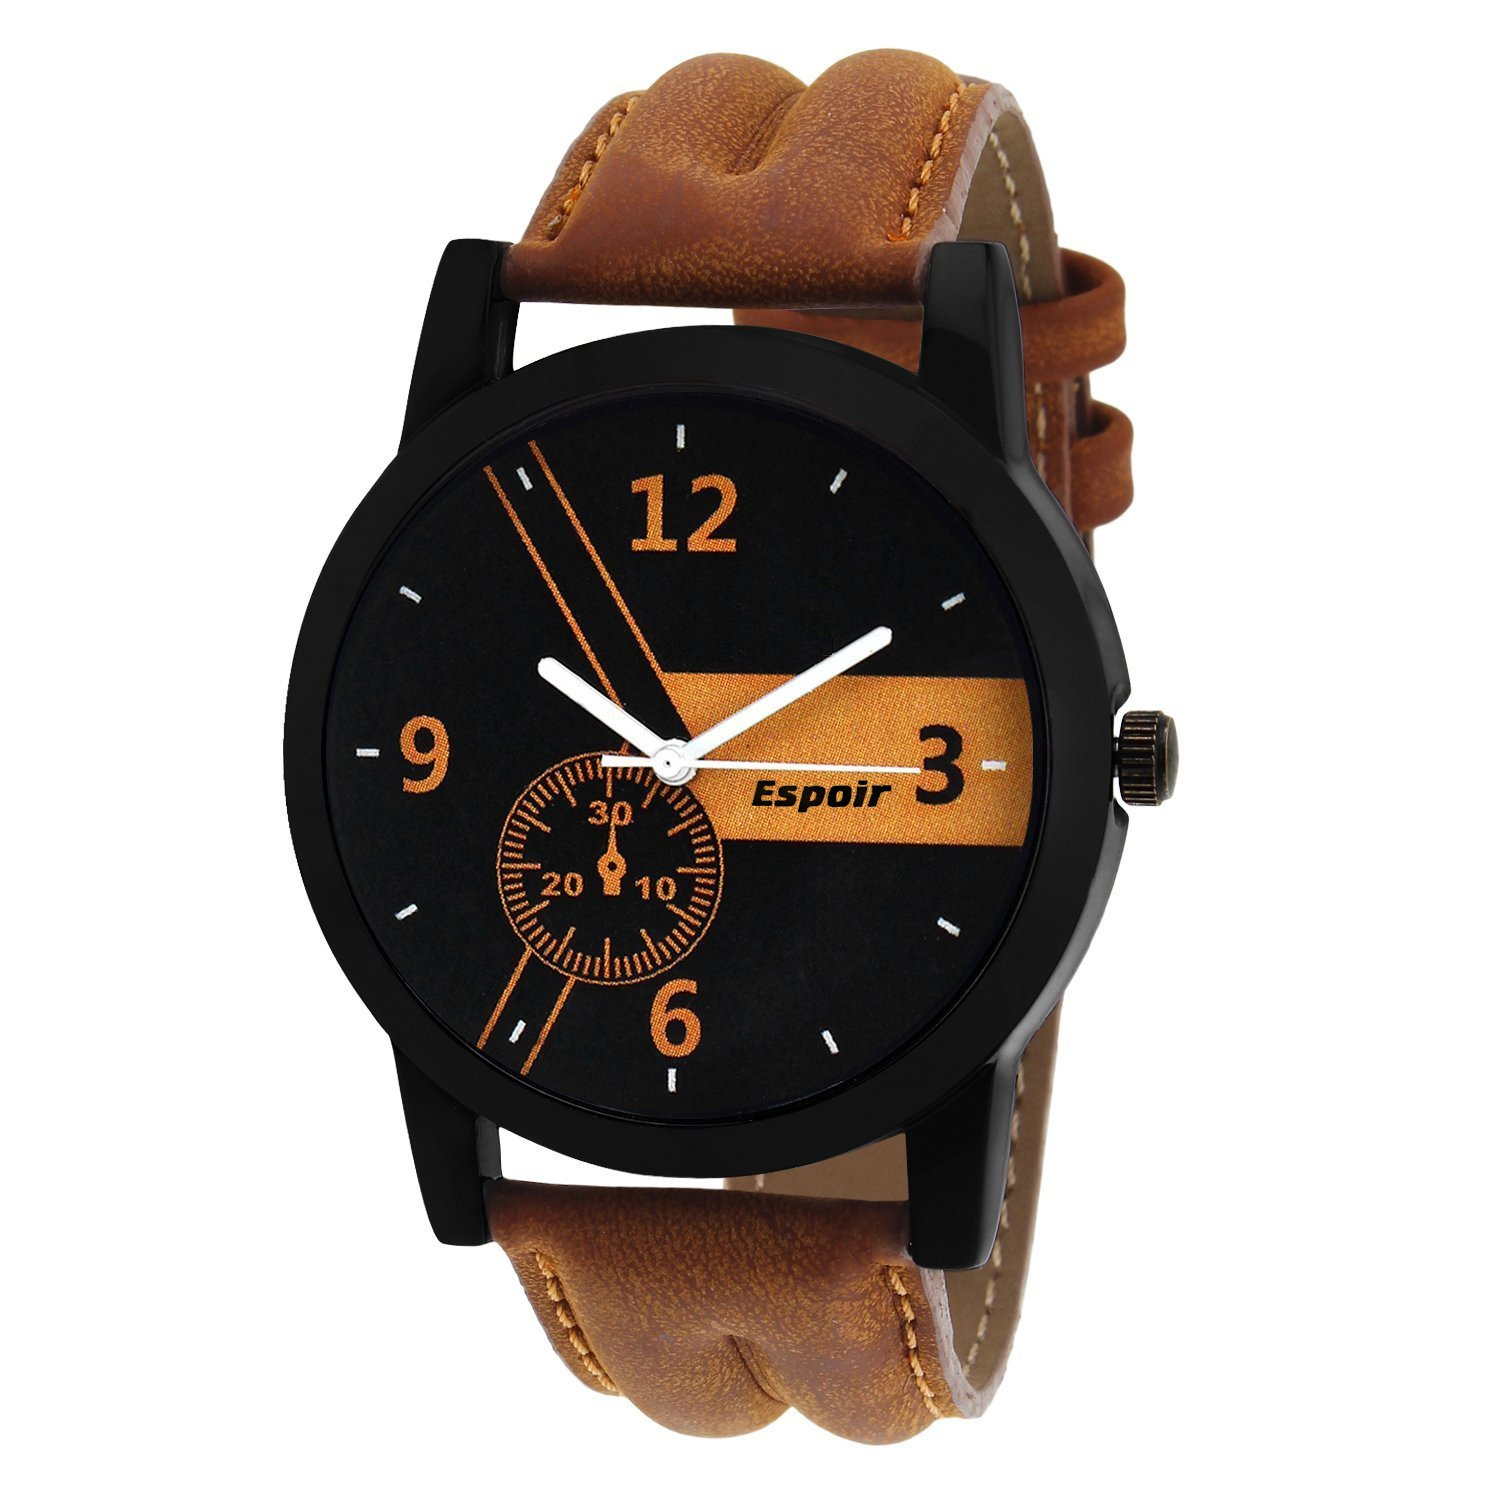 Espoir Casual Analogue Tan Leather Strap Multicolour Dial Men's Watch By Amazon @ Rs.283.00